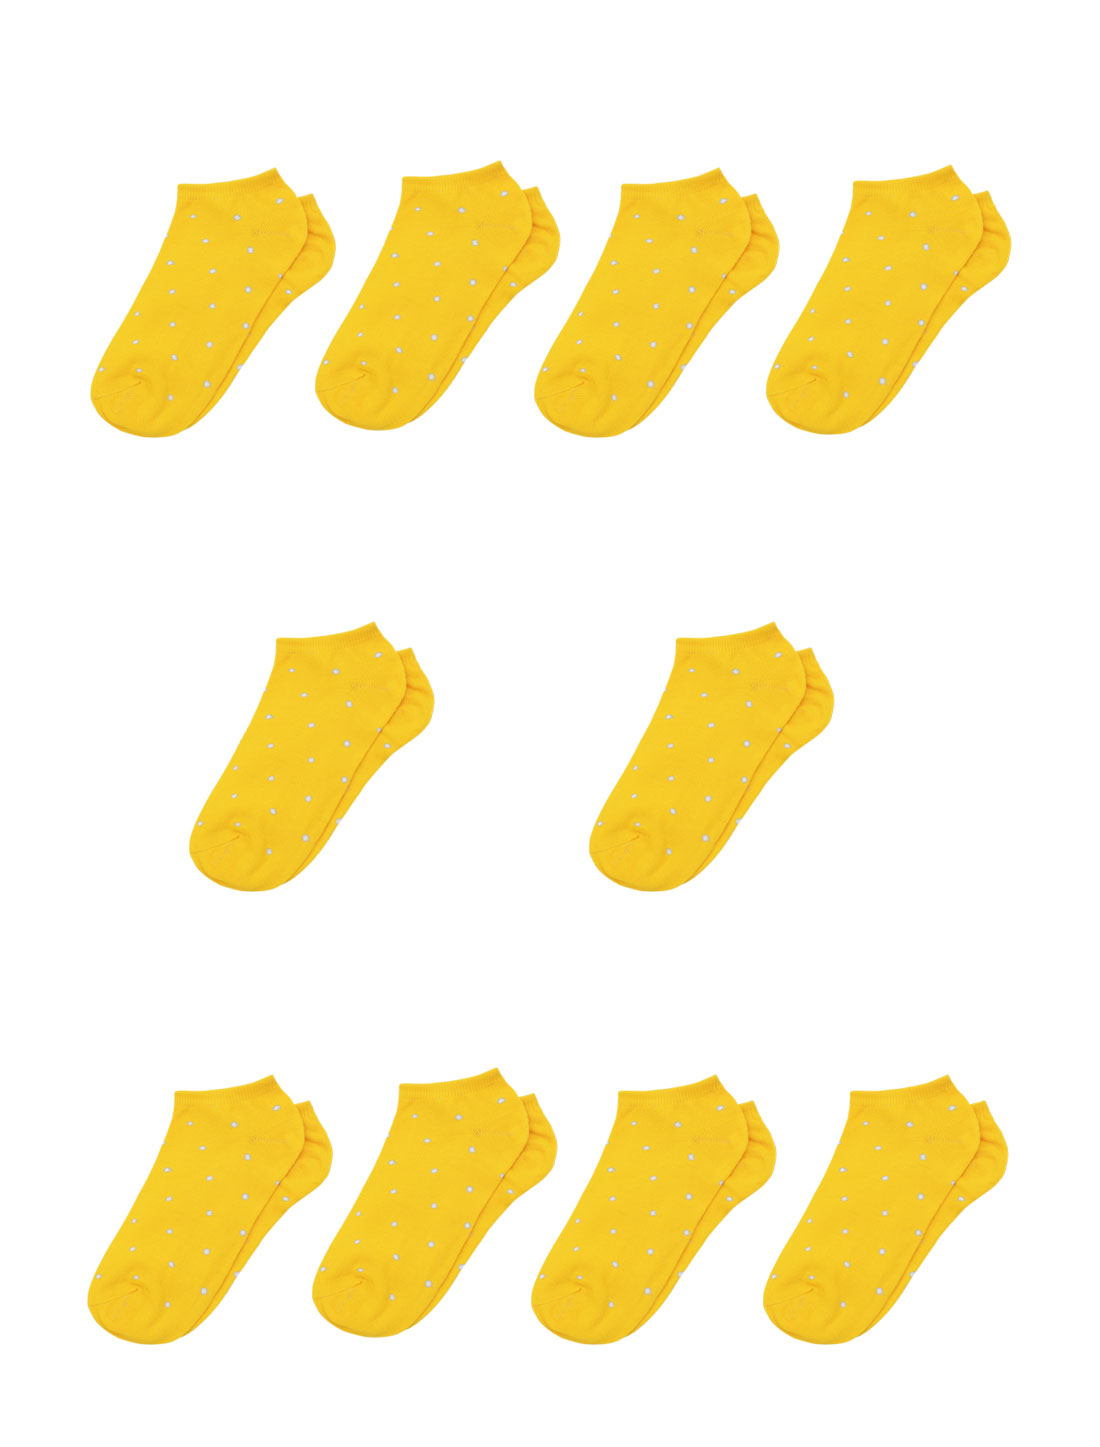 Lady Dots Pattern Stretchy Ankle Length Short Socks 10 Pairs Yellow